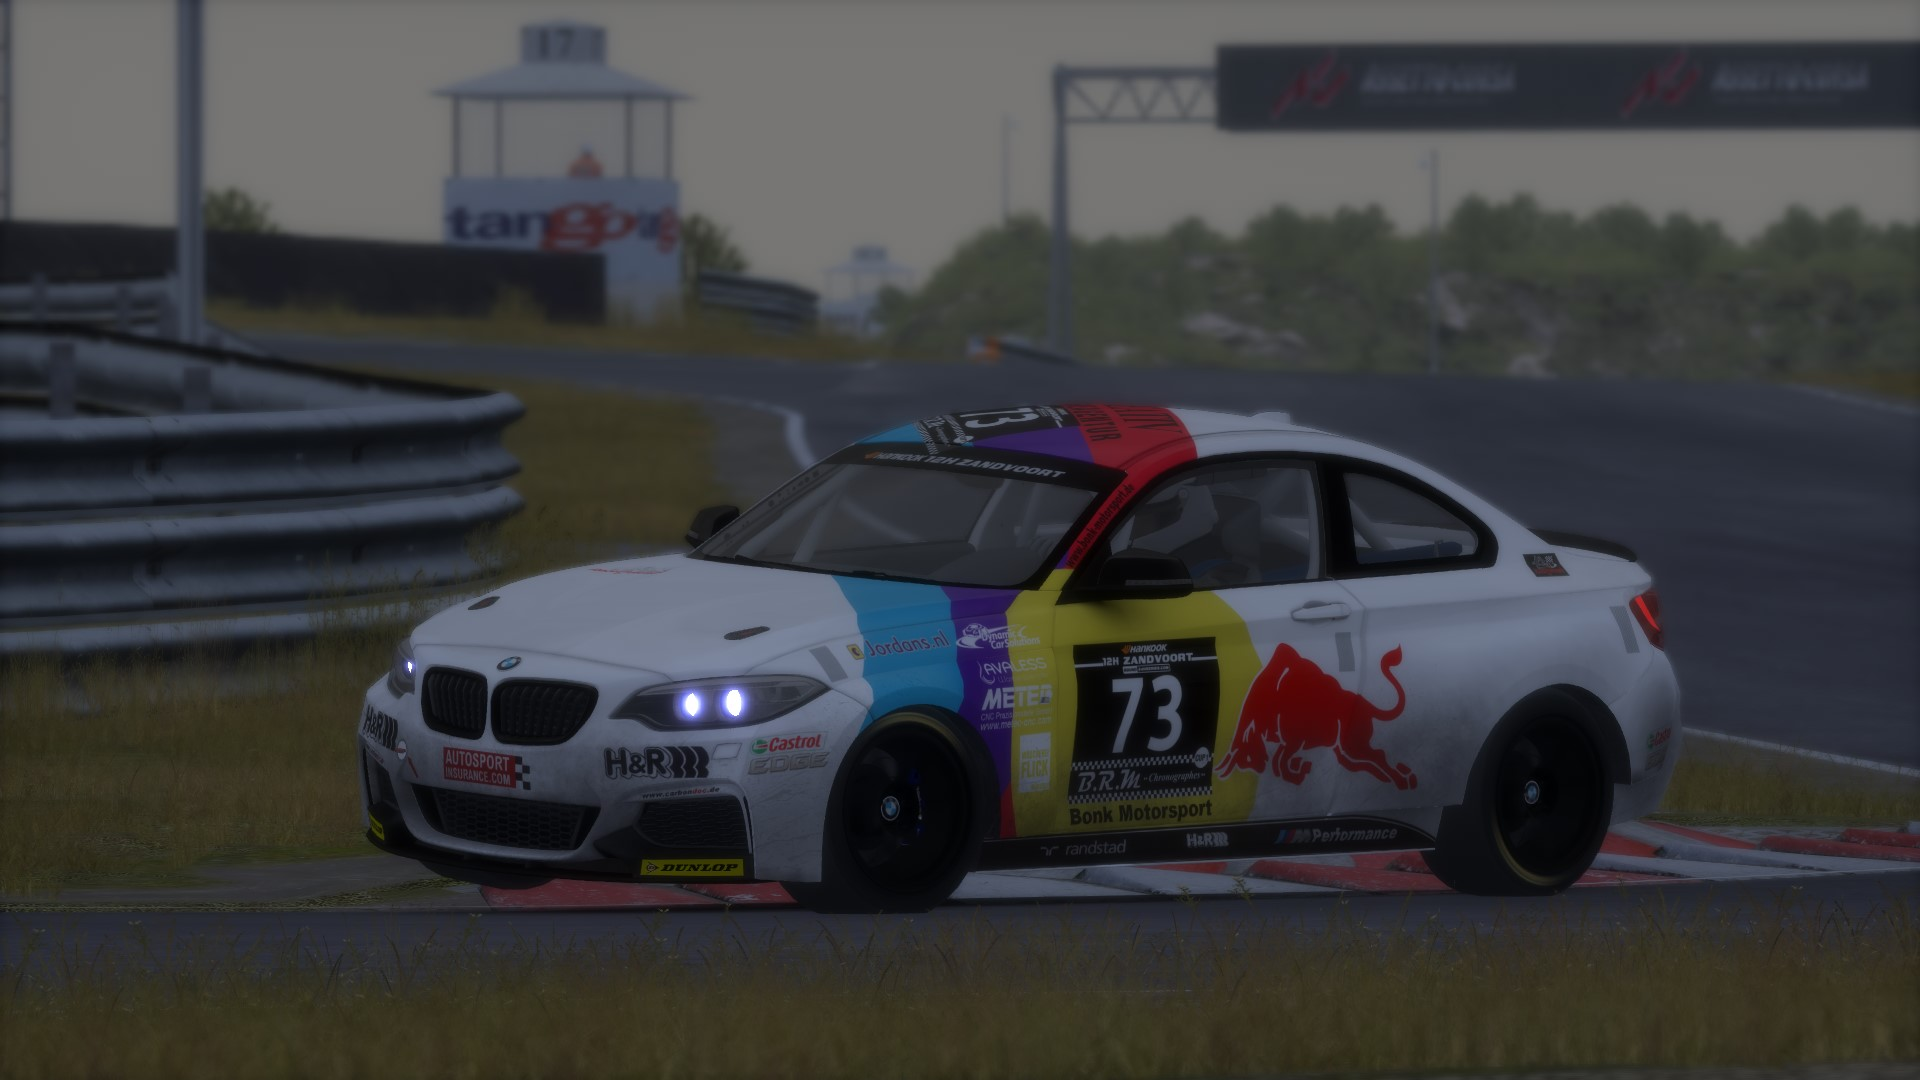 Screenshot_ks_bmw_m235i_racing_ks_zandvoort_30-8-115-21-12-21.jpg